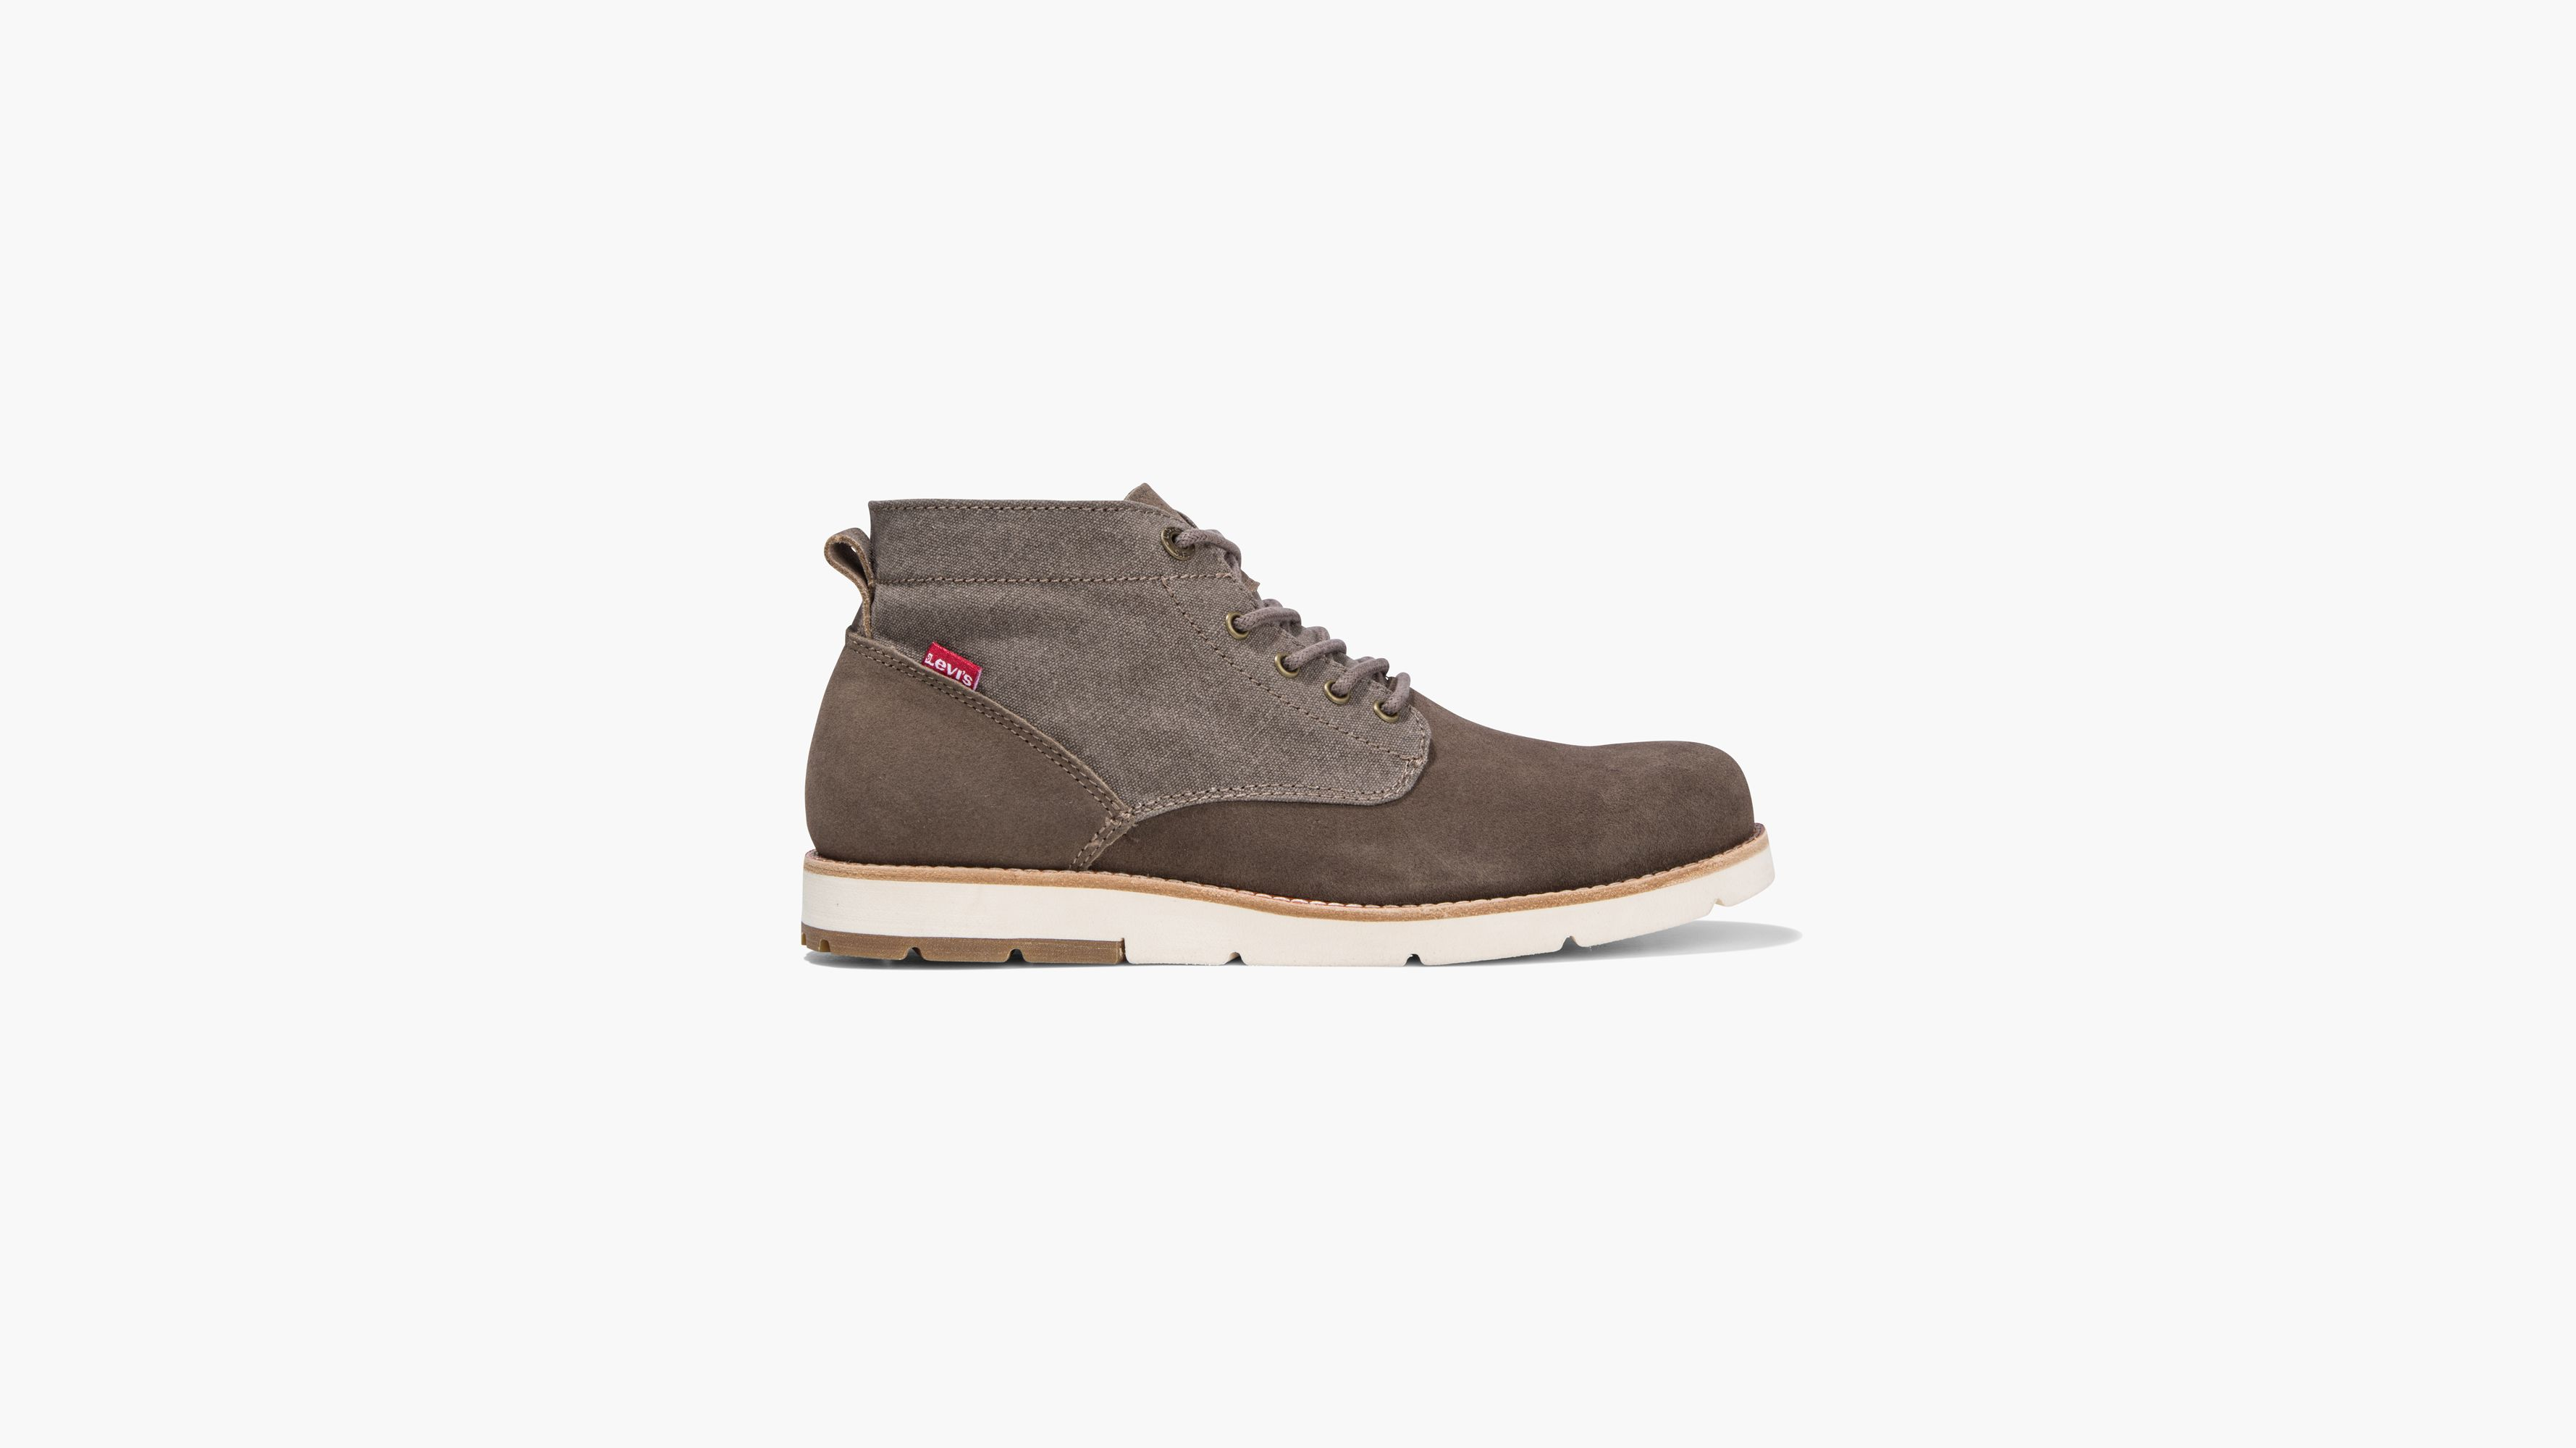 Jax Light Chukka Boots